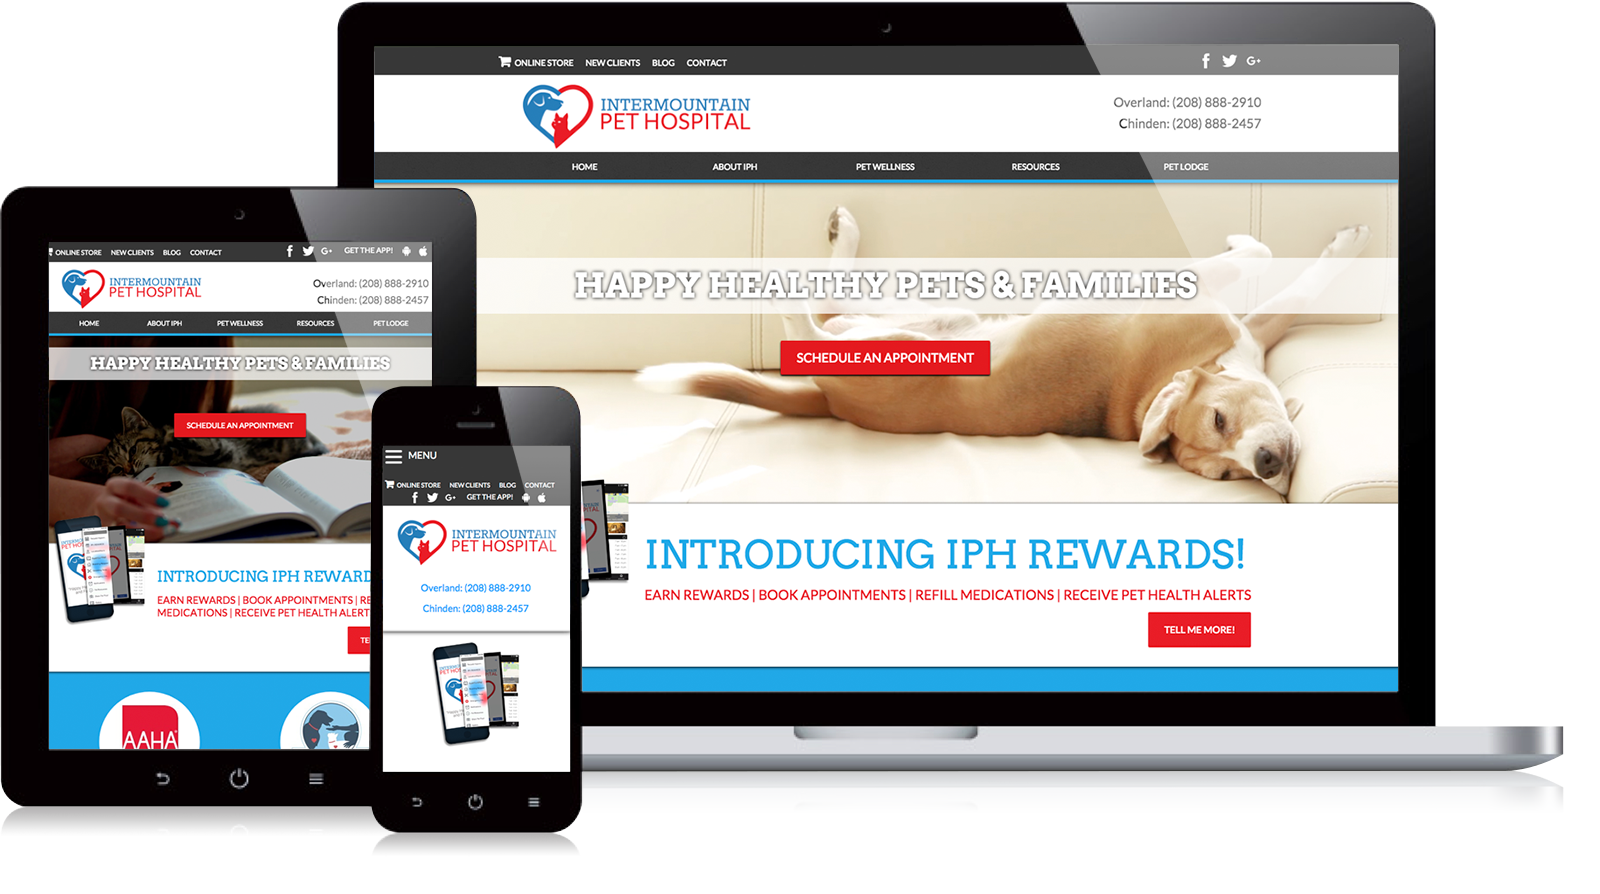 Intermountain Pet Hospital Website